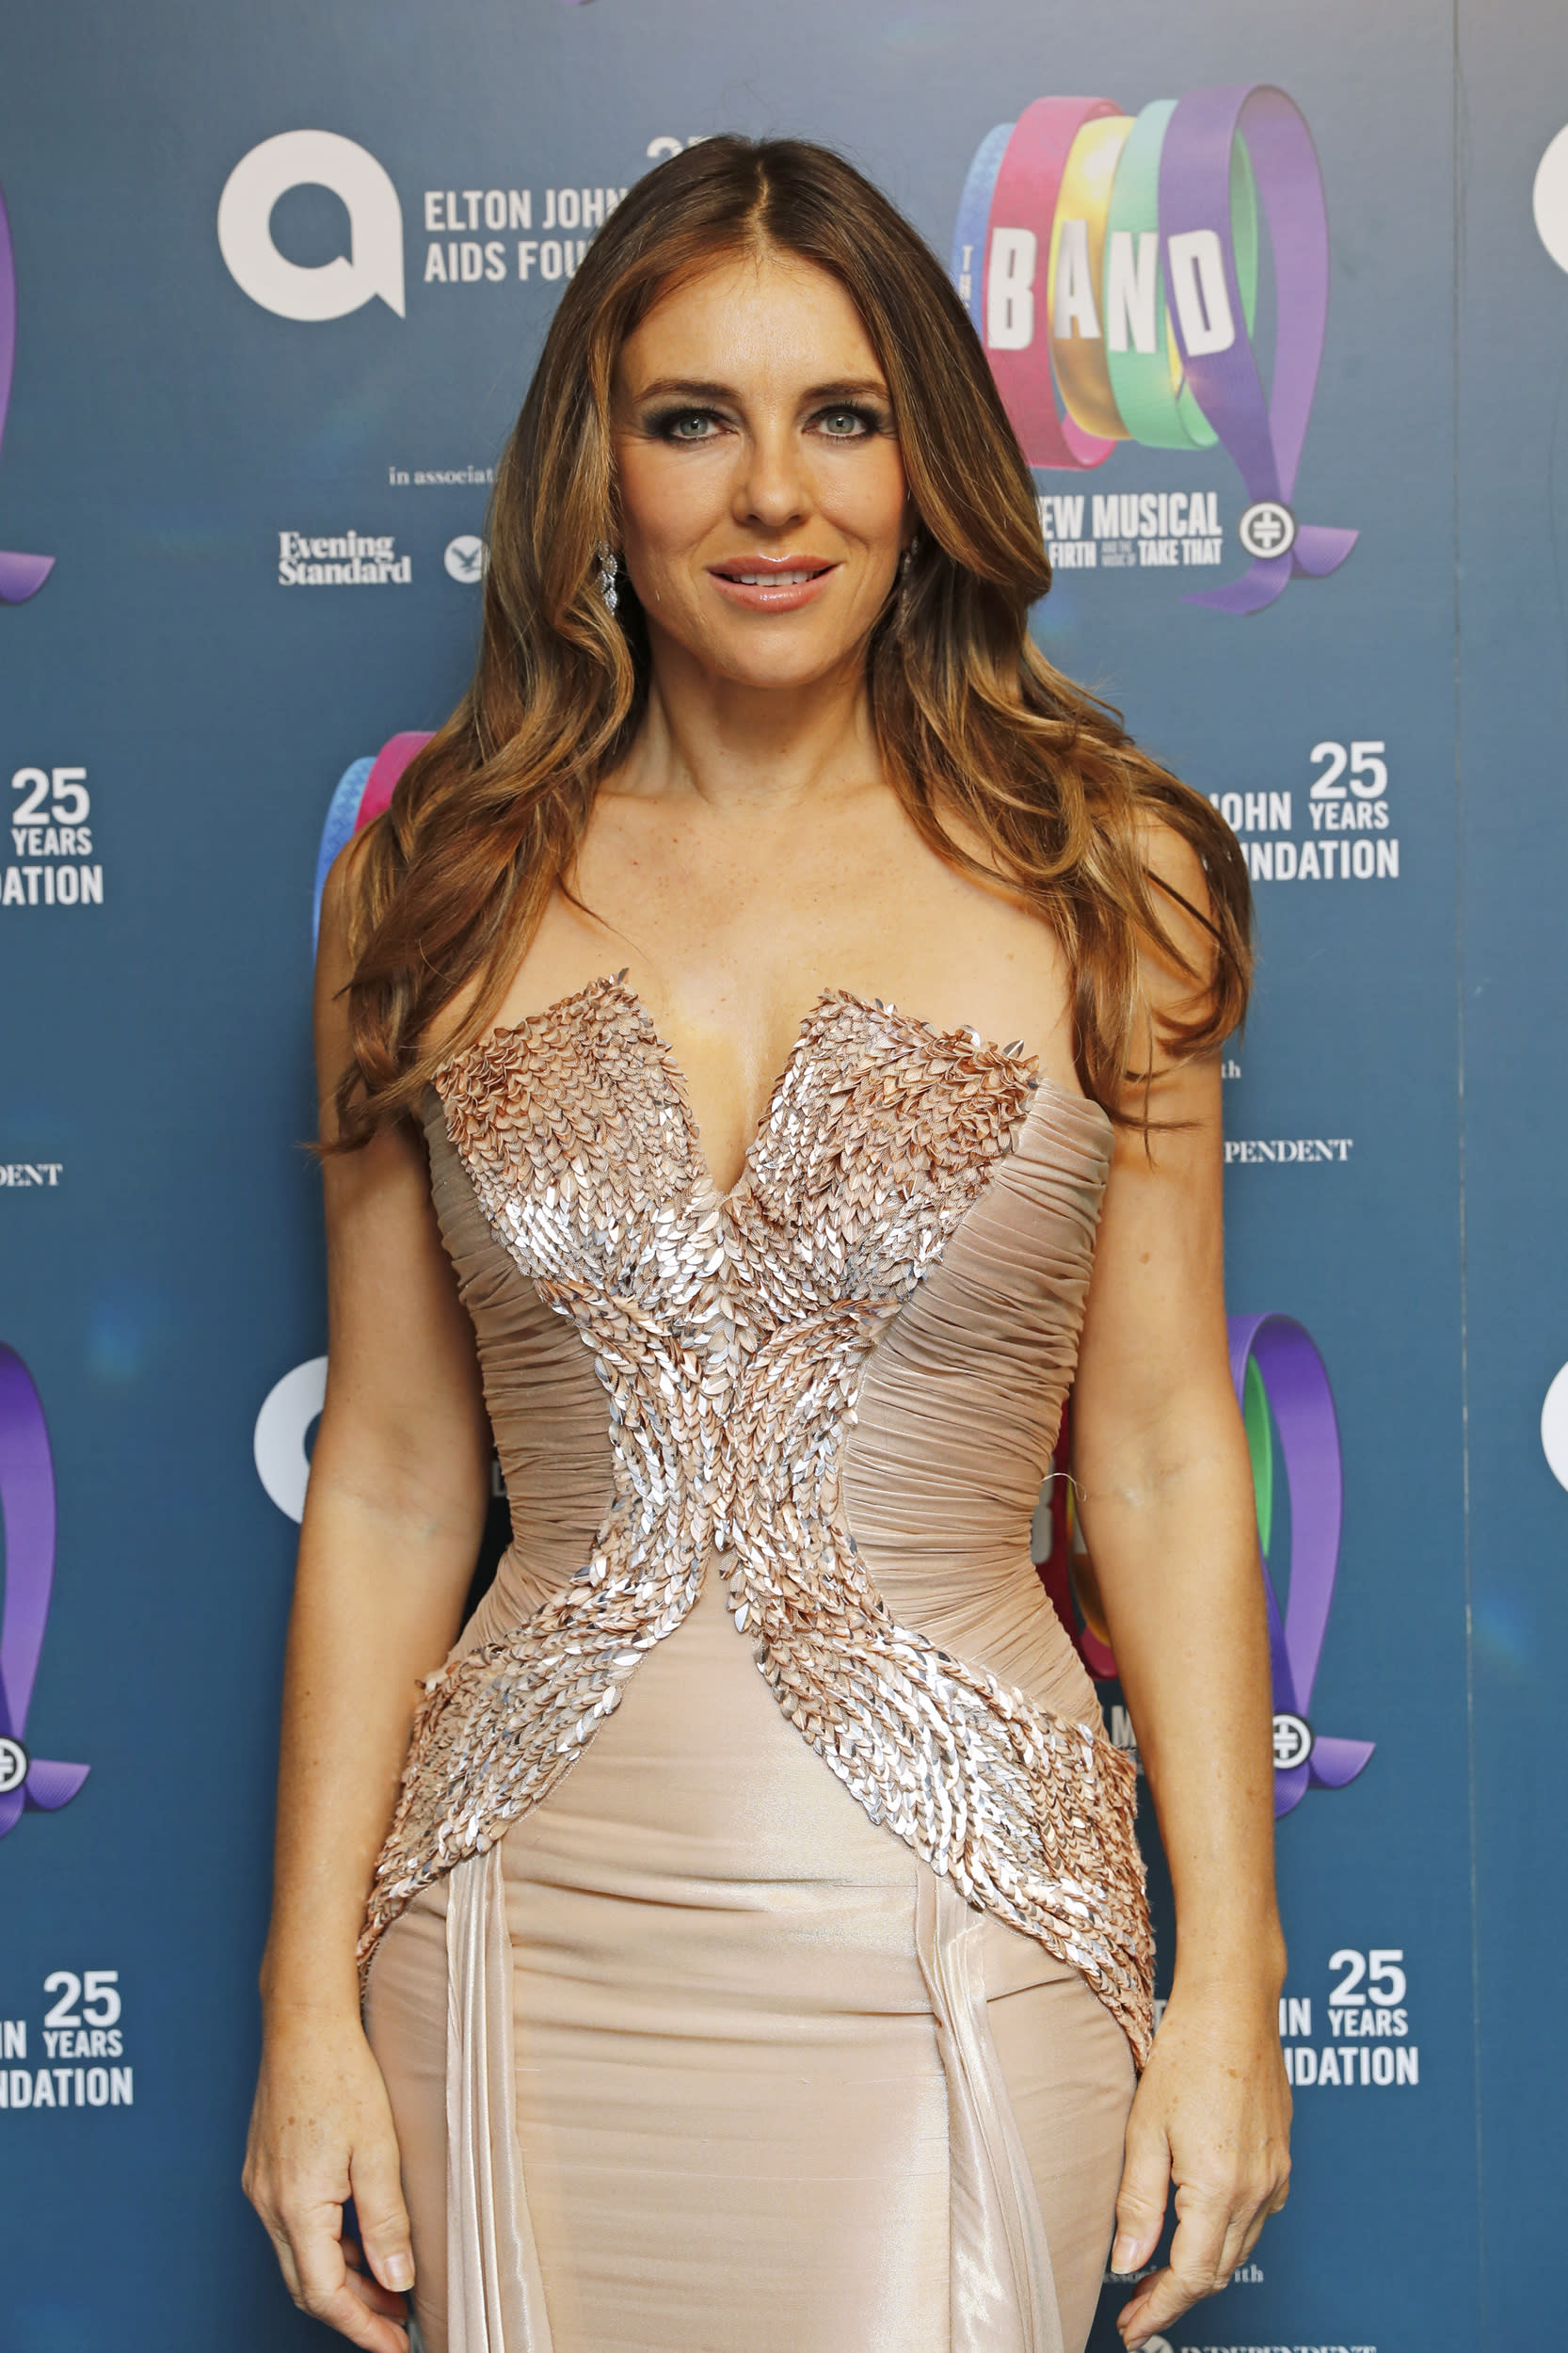 LONDON, ENGLAND - DECEMBER 04:    Elizabeth Hurley attends  the Opening Night Gala of 'The Band' to benefit the Elton John AIDS Foundation supported by The Evening Standard at Theatre Royal Haymarket on December 4, 2018 in London, England.  (Photo by David M. Benett/Dave Benett/Getty Images)